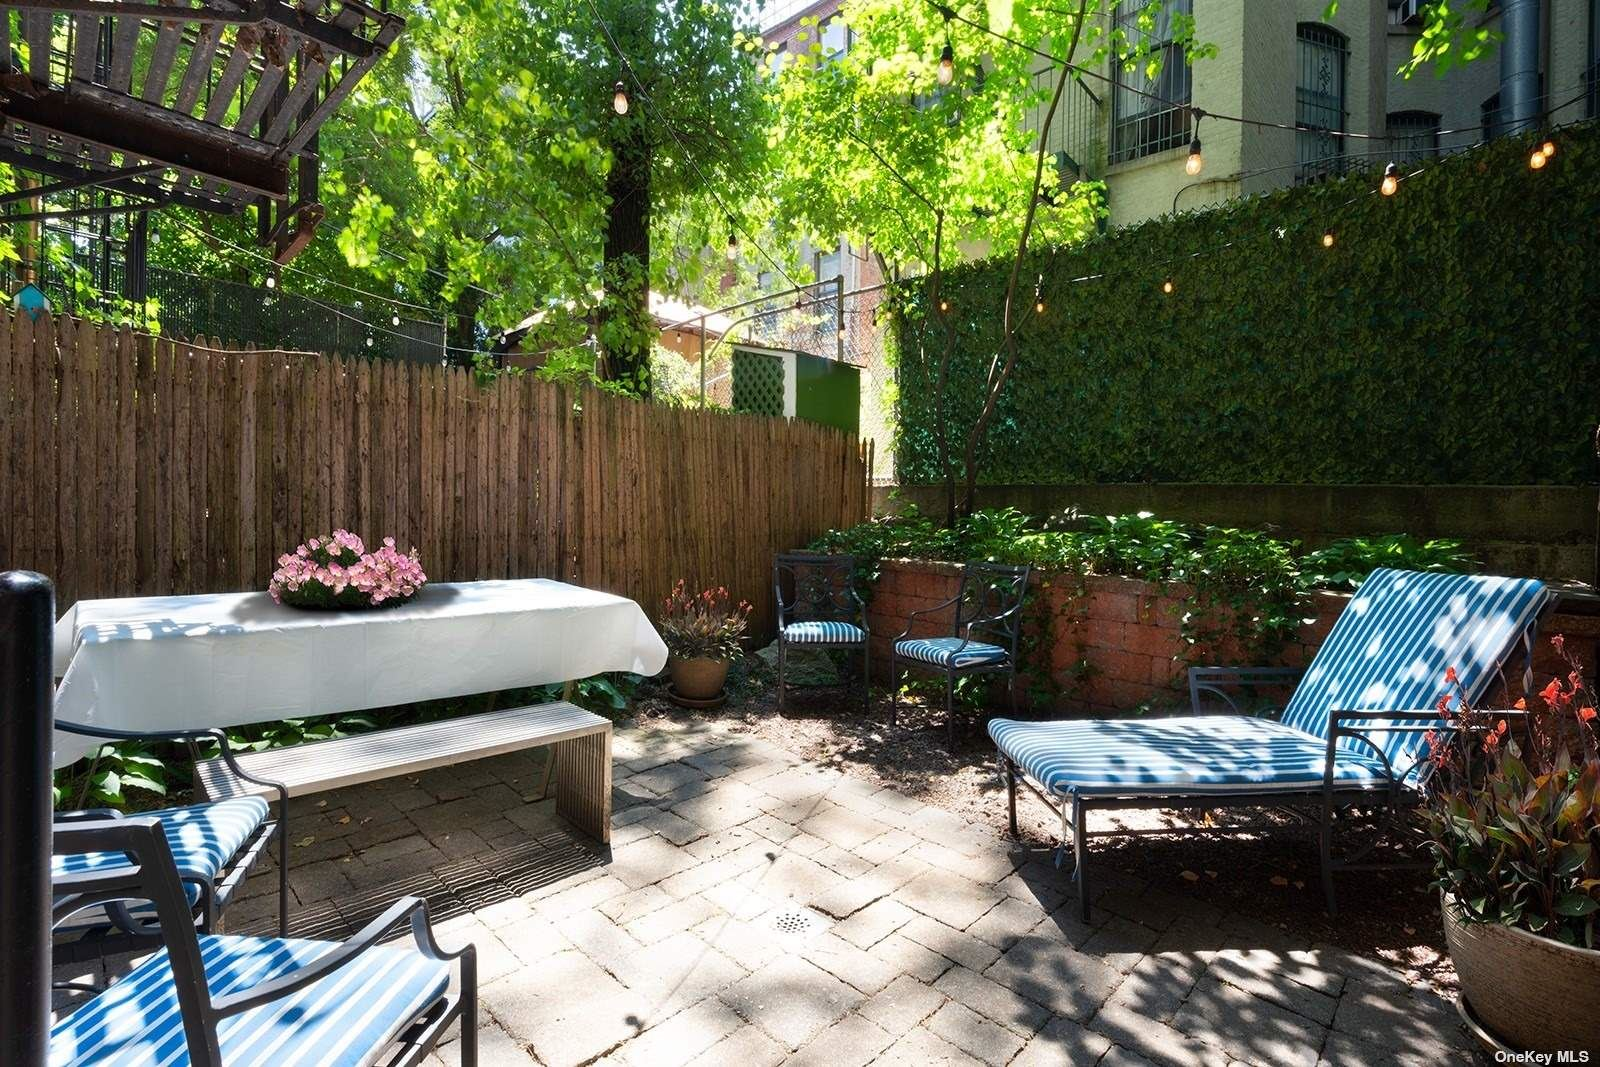 254 W West 123rd St. #A, New York, NY 10027 - MLS#: 3228312